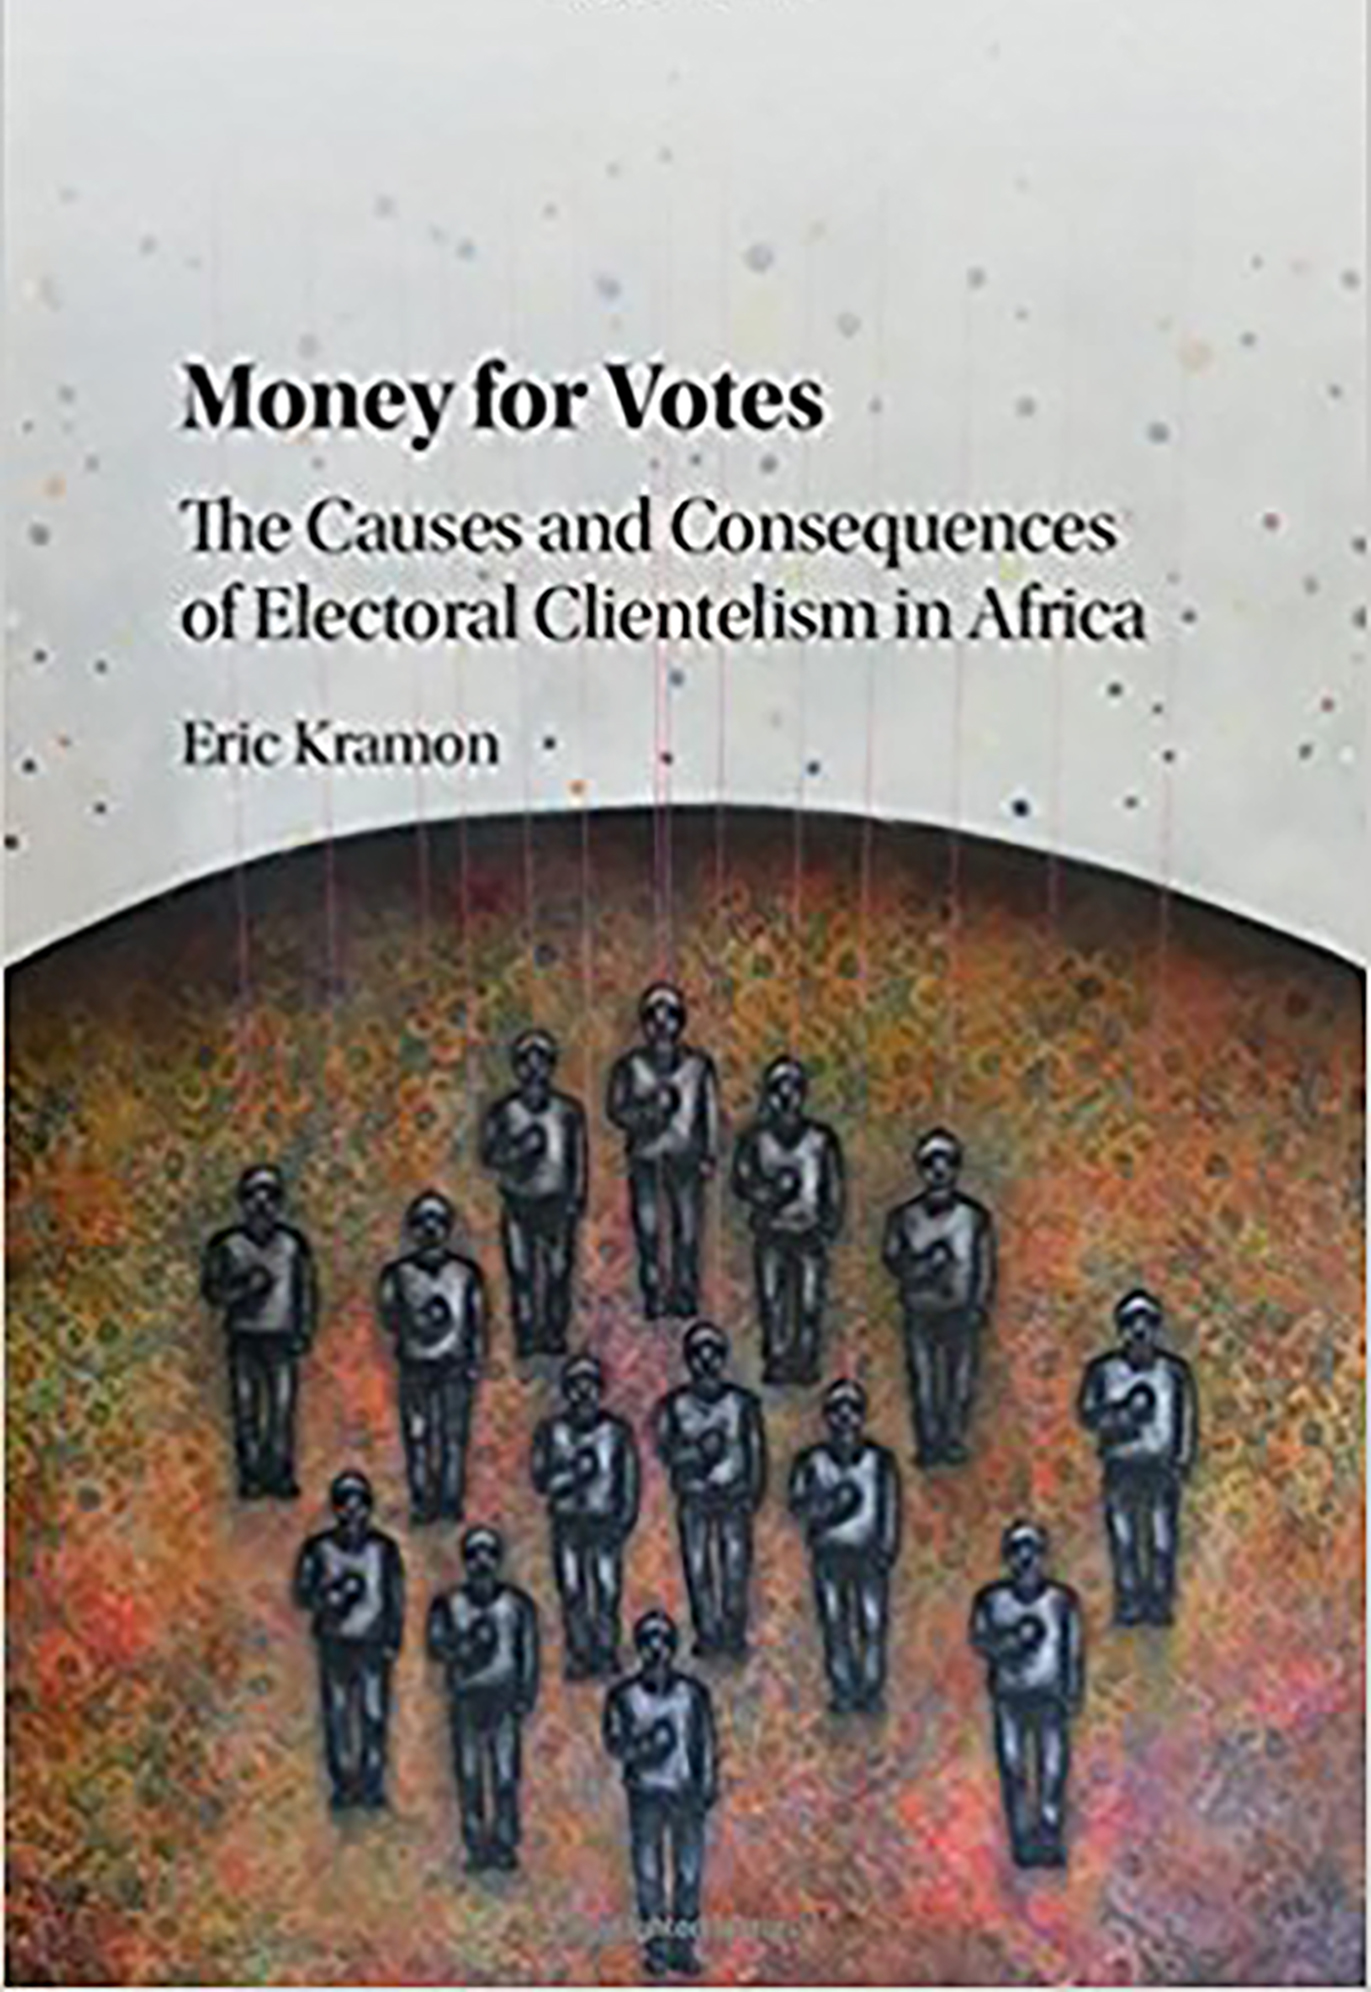 photo: text Money for Votes The Causes and Consequences of Electoral Clientelism in Africa Eric Kramon. A white background with a gold and green circle, 14 figures stand in the circle with their hands on their hearts